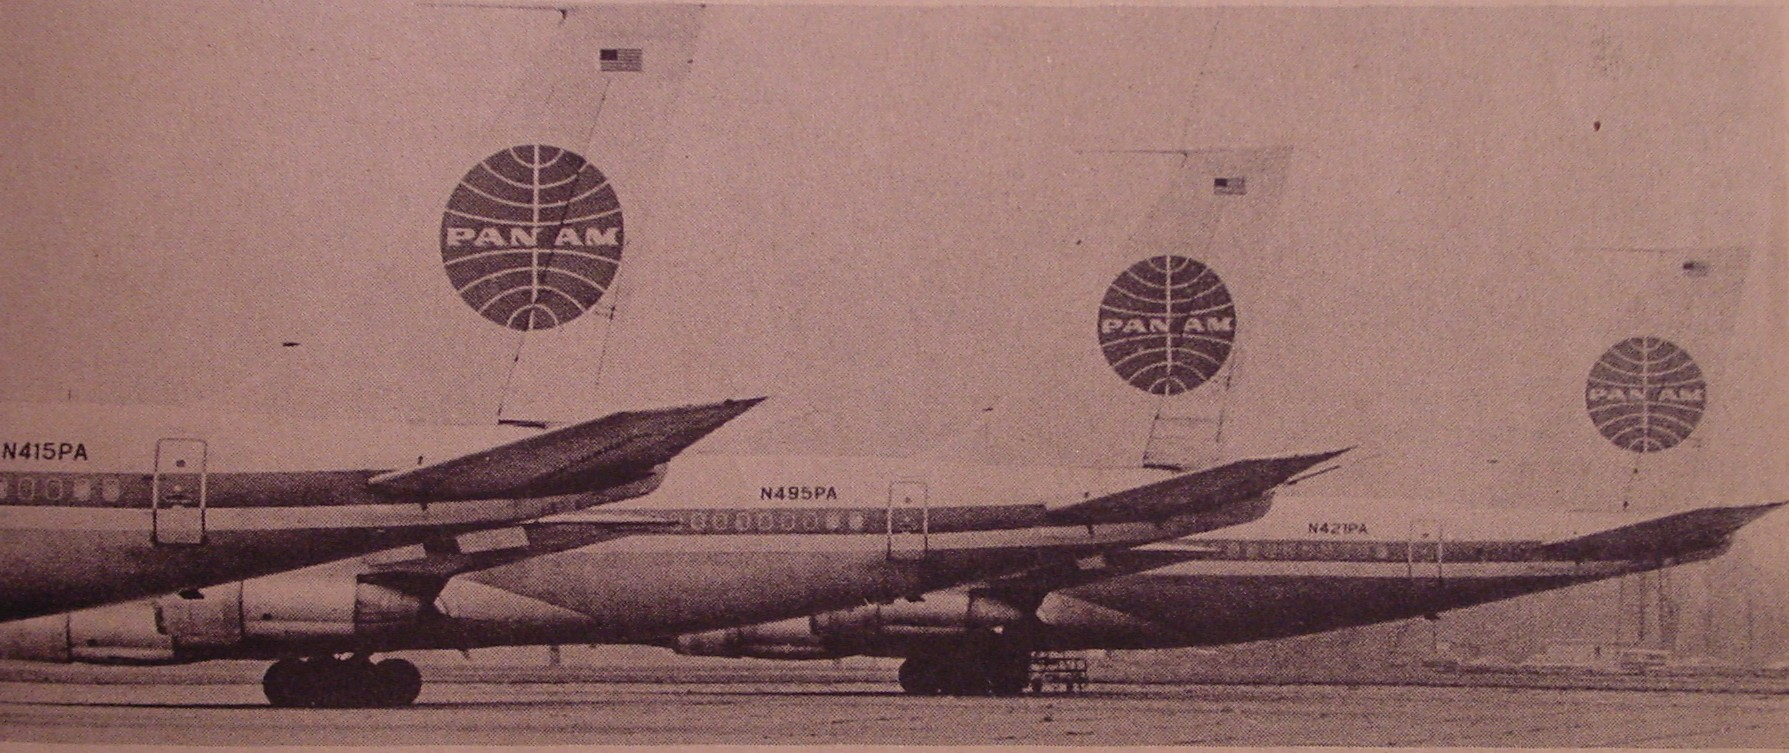 Three Pan Am 707 tails on the ramp in Detroit.